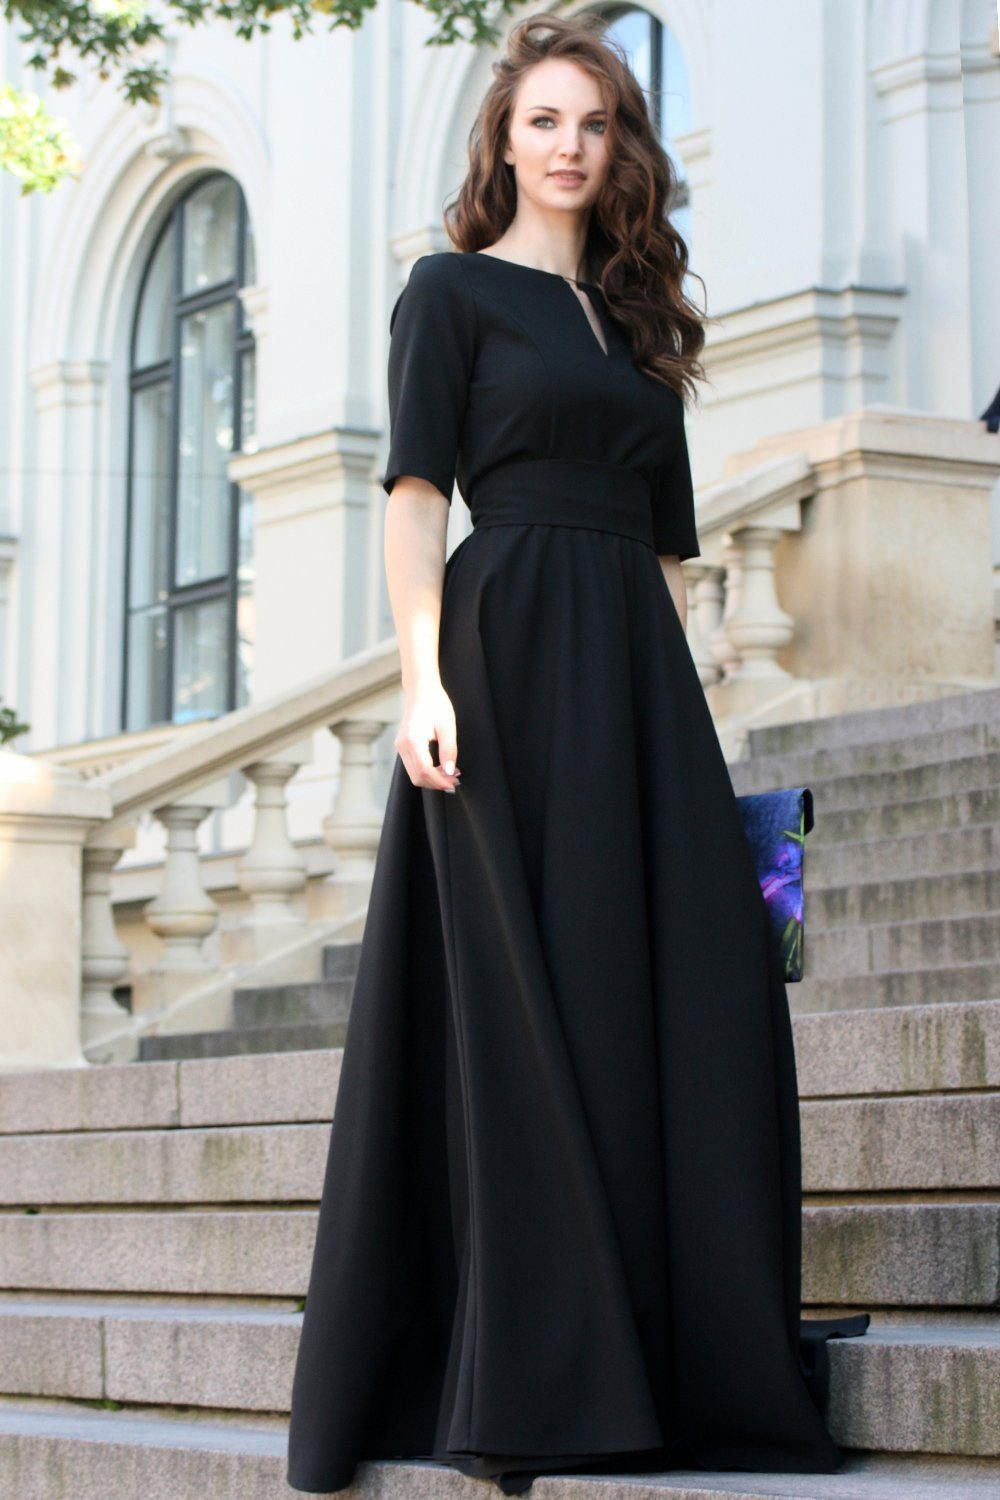 38+ Plus size wedding dresses with black accents information